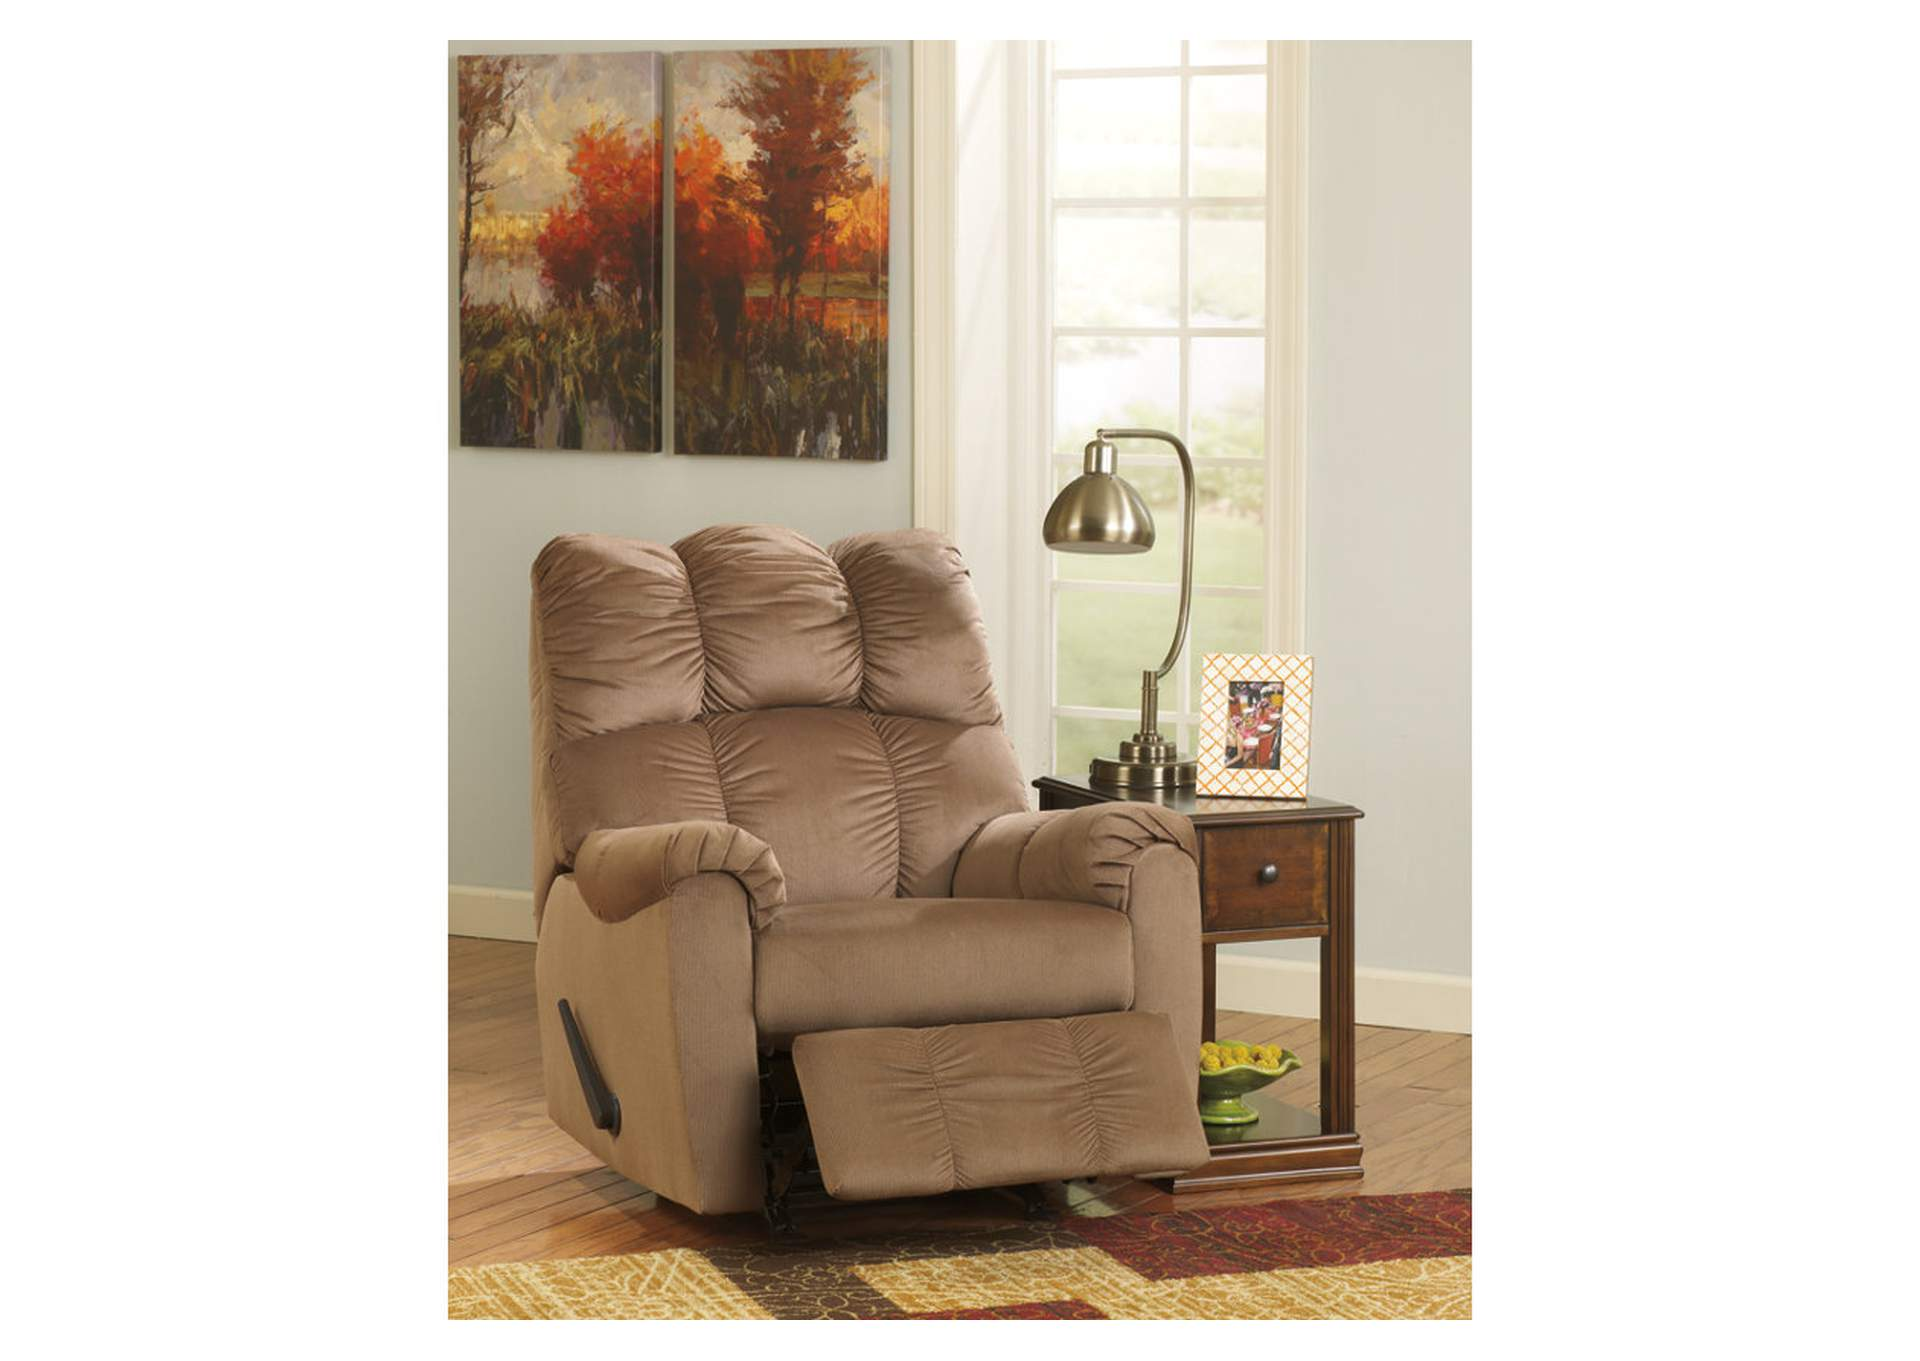 Rossie Furniture Hammond LA Raulo Mocha Rocker Recliner